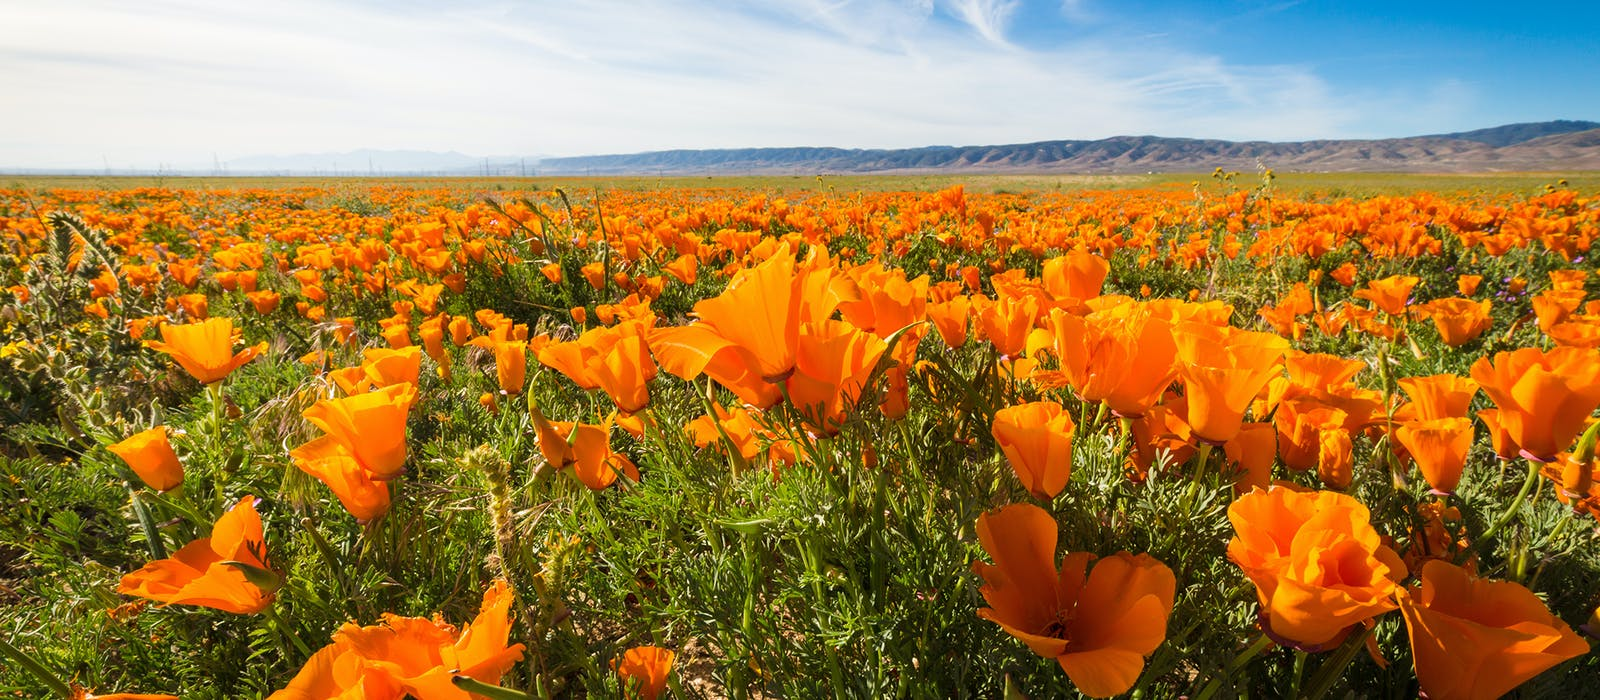 A 90-minute drive from Los Angeles, the 1,800-acre Antelope Valley California Poppy Reserve offers a vibrant springtime escape from the city. But there's a lot more blooming in the Golden State this spring.